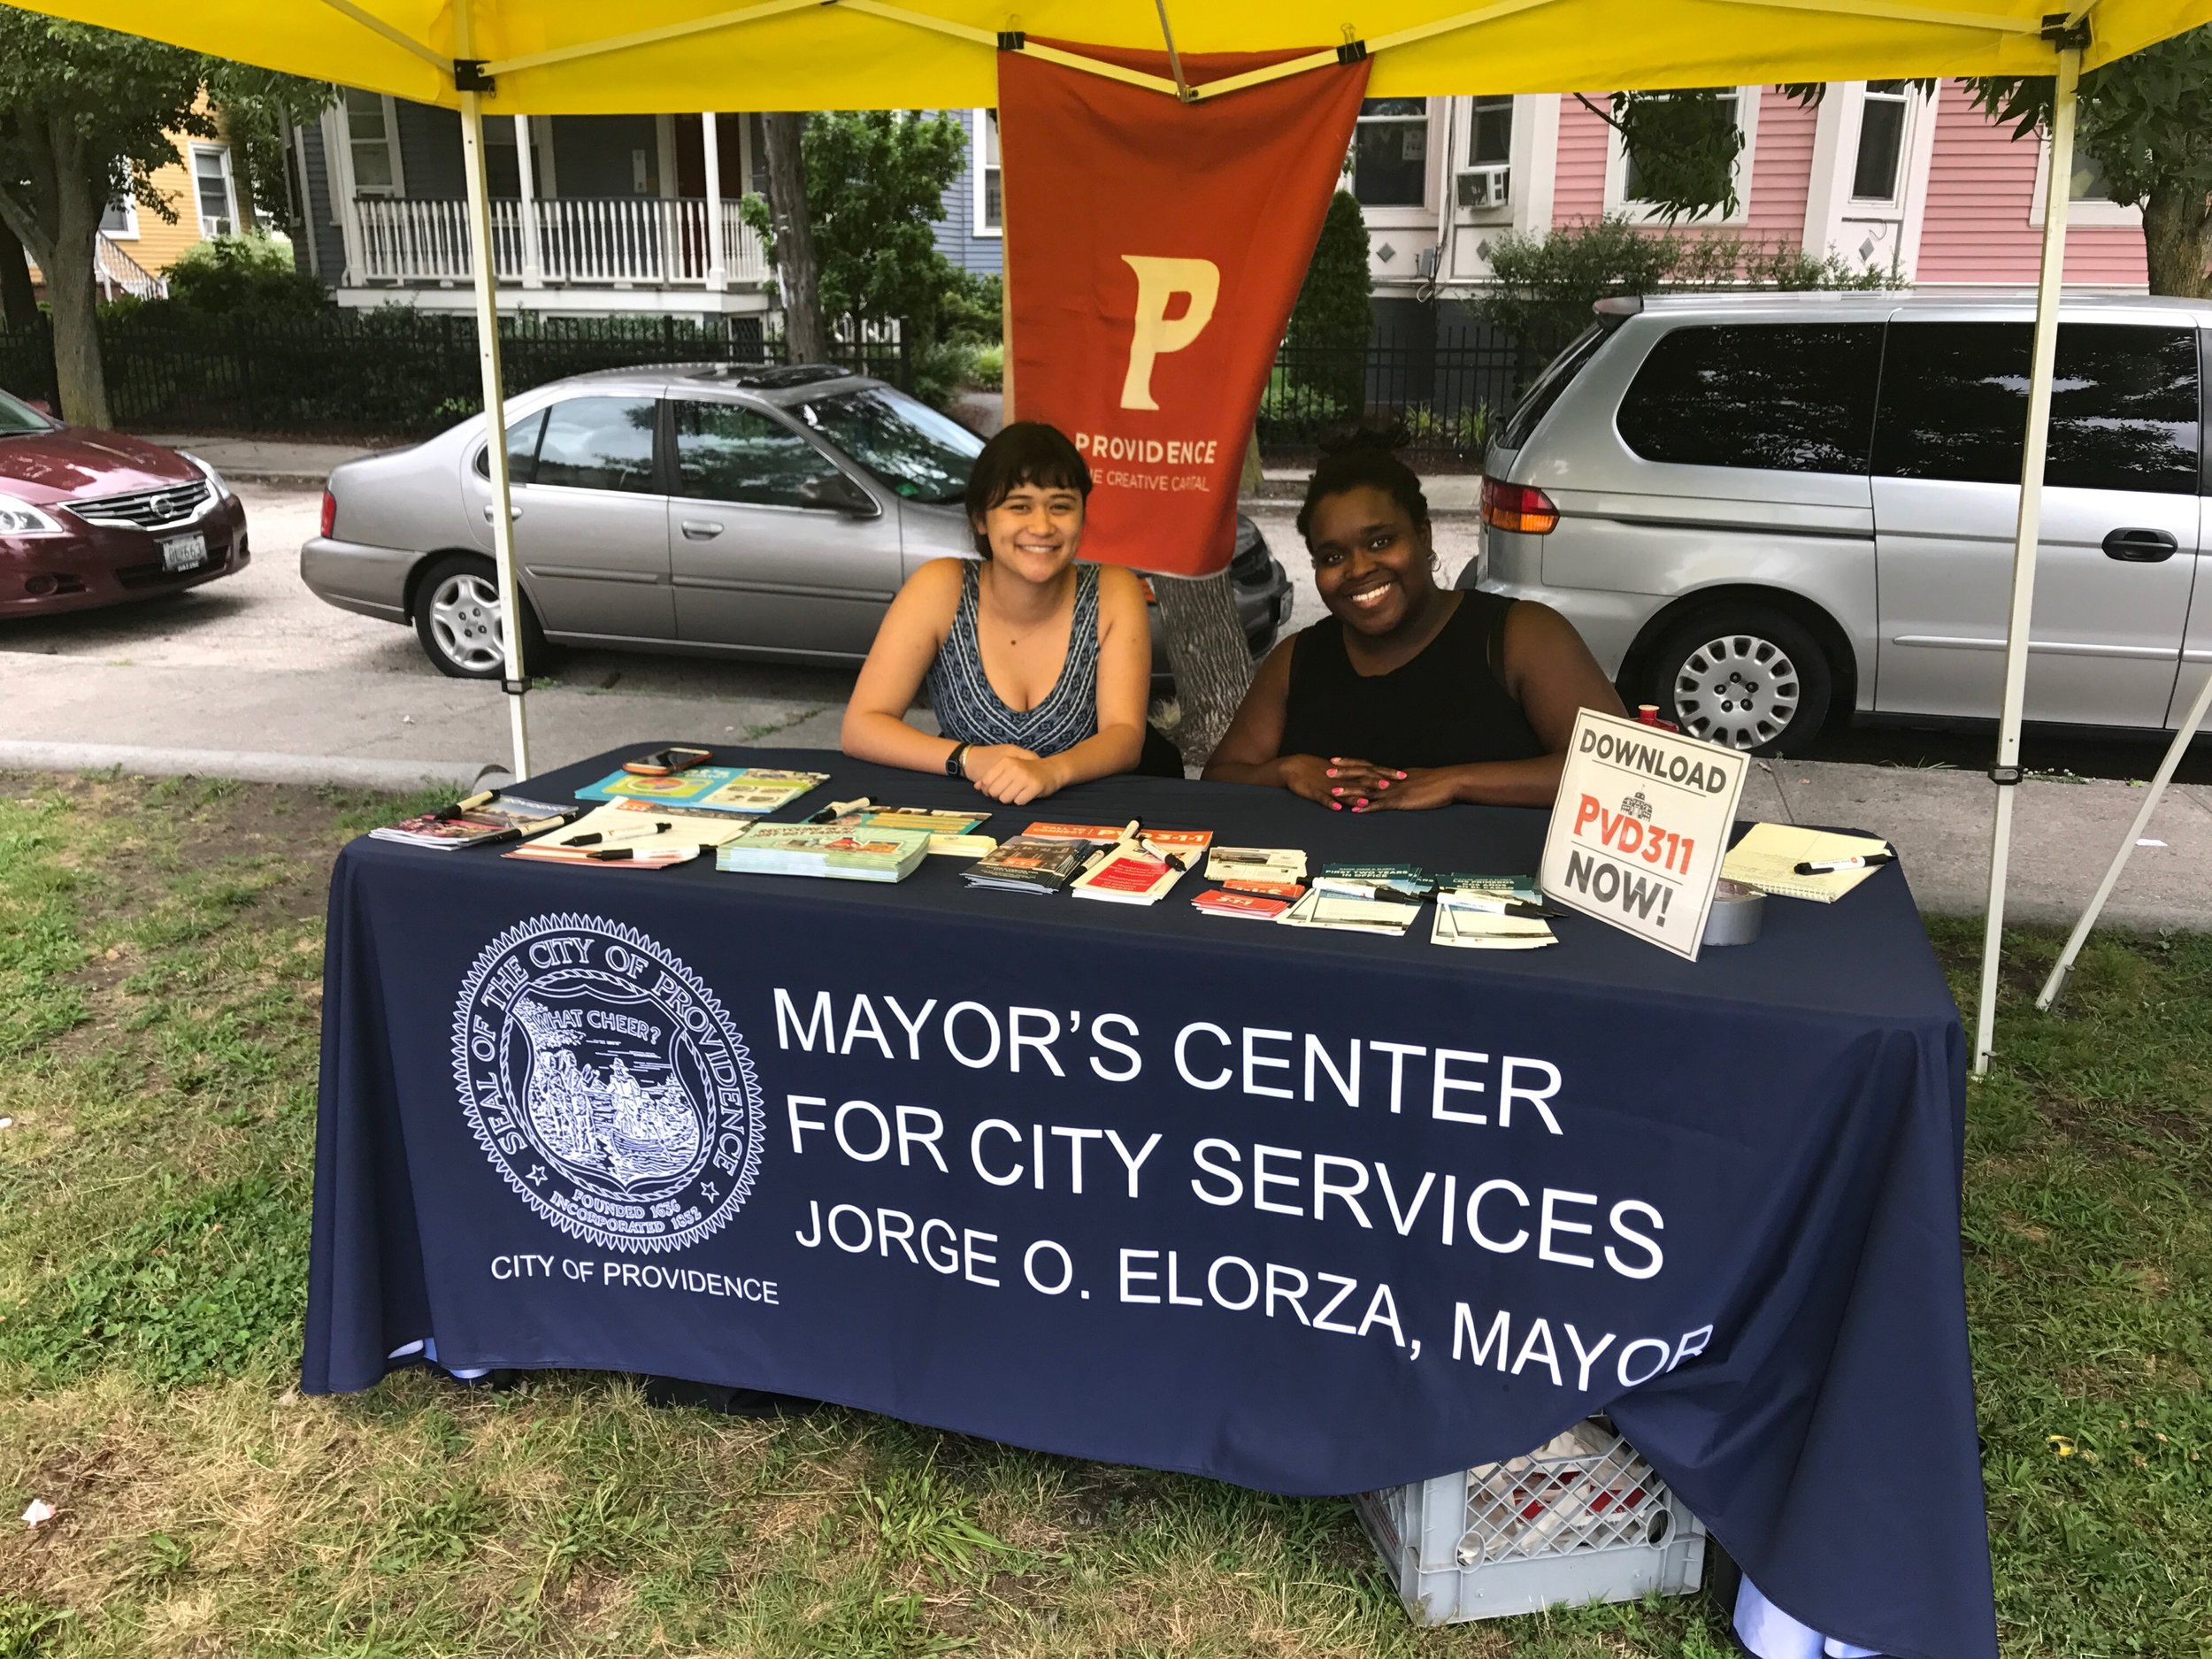 part of my work included direct constituent outreach at local events, such as the  Sankofa Farmer's Market